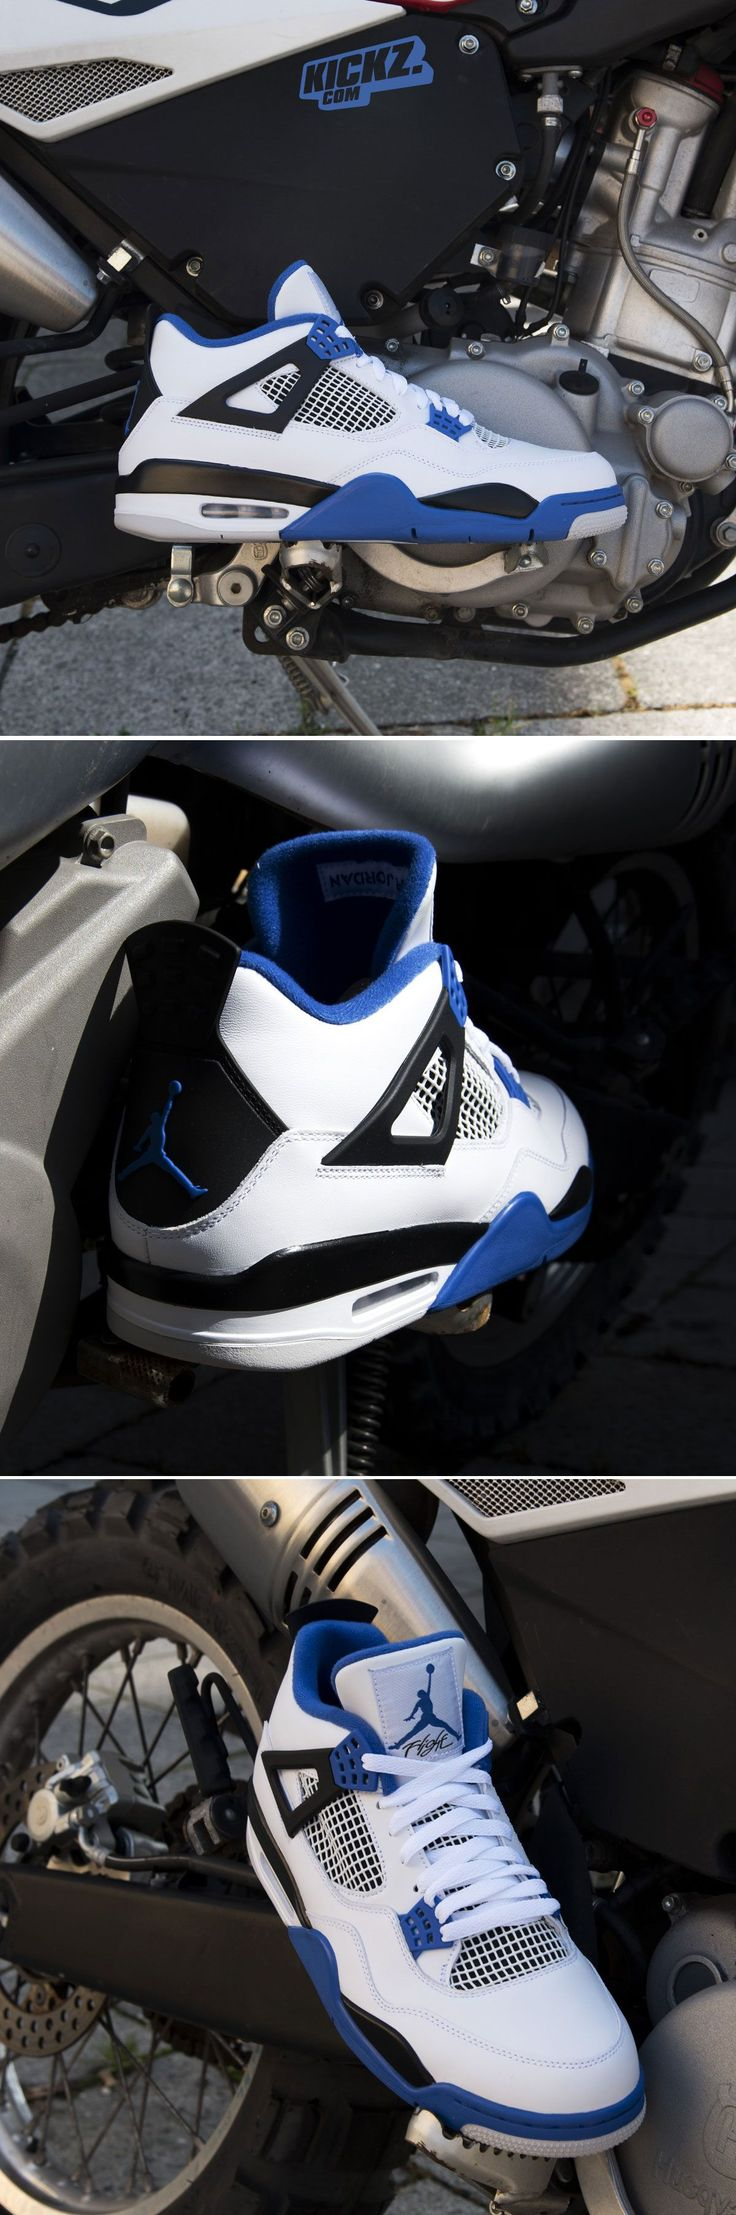 "Air Jordan 4 Retro ""Motorsport"" (white game royal). What a machine! #aj4 #airjordan #kickzcom"